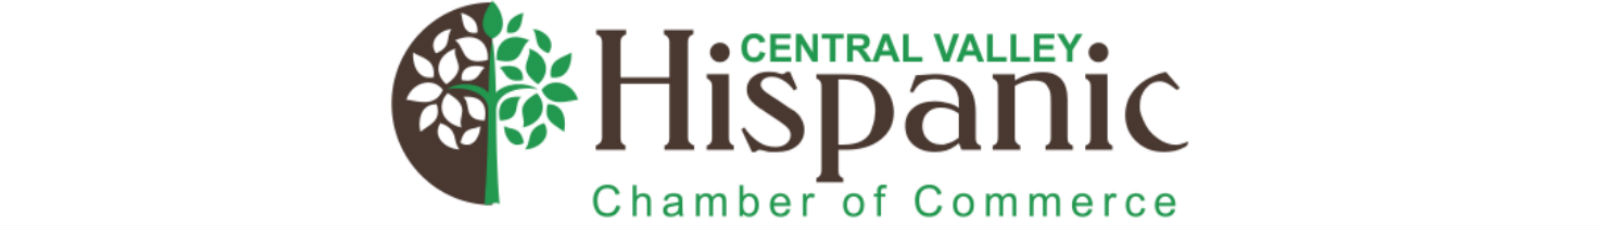 Central Valley Hispanic Chamber of Commerce logo